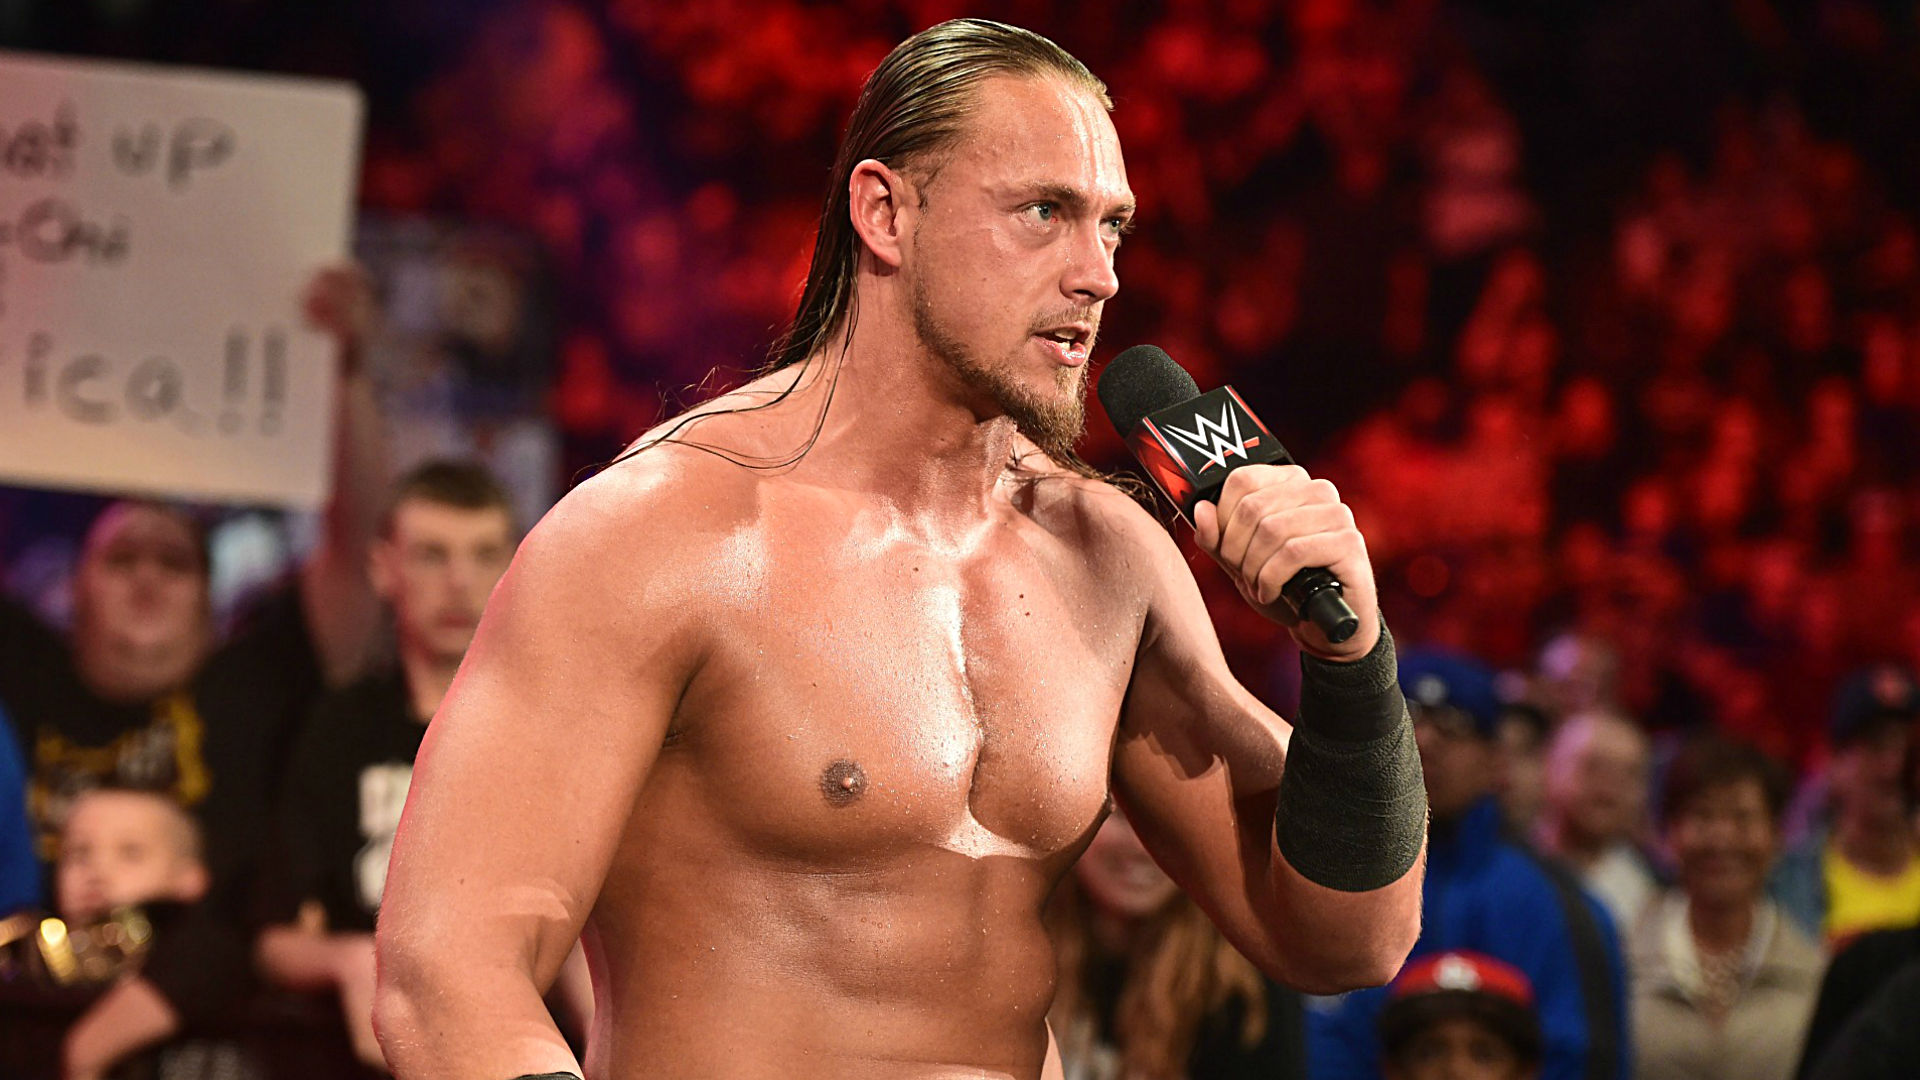 Backstage News On When Big Cass Was Told About His WWE Release